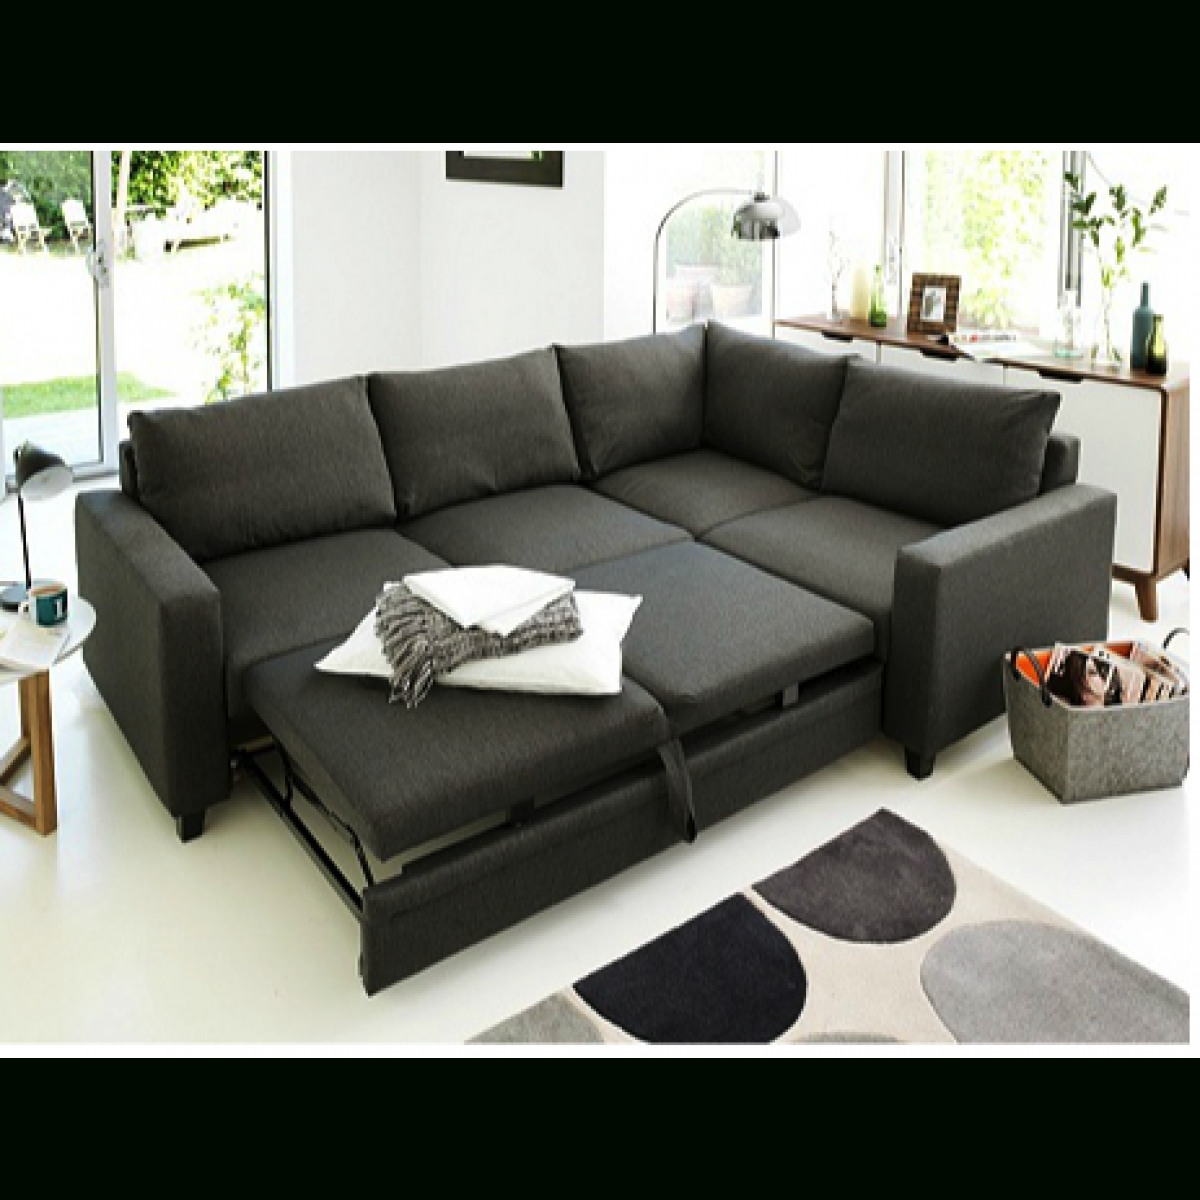 Hygena Seattle Right Hand Corner Sofa Bed – Charcoal (Image 11 of 20)